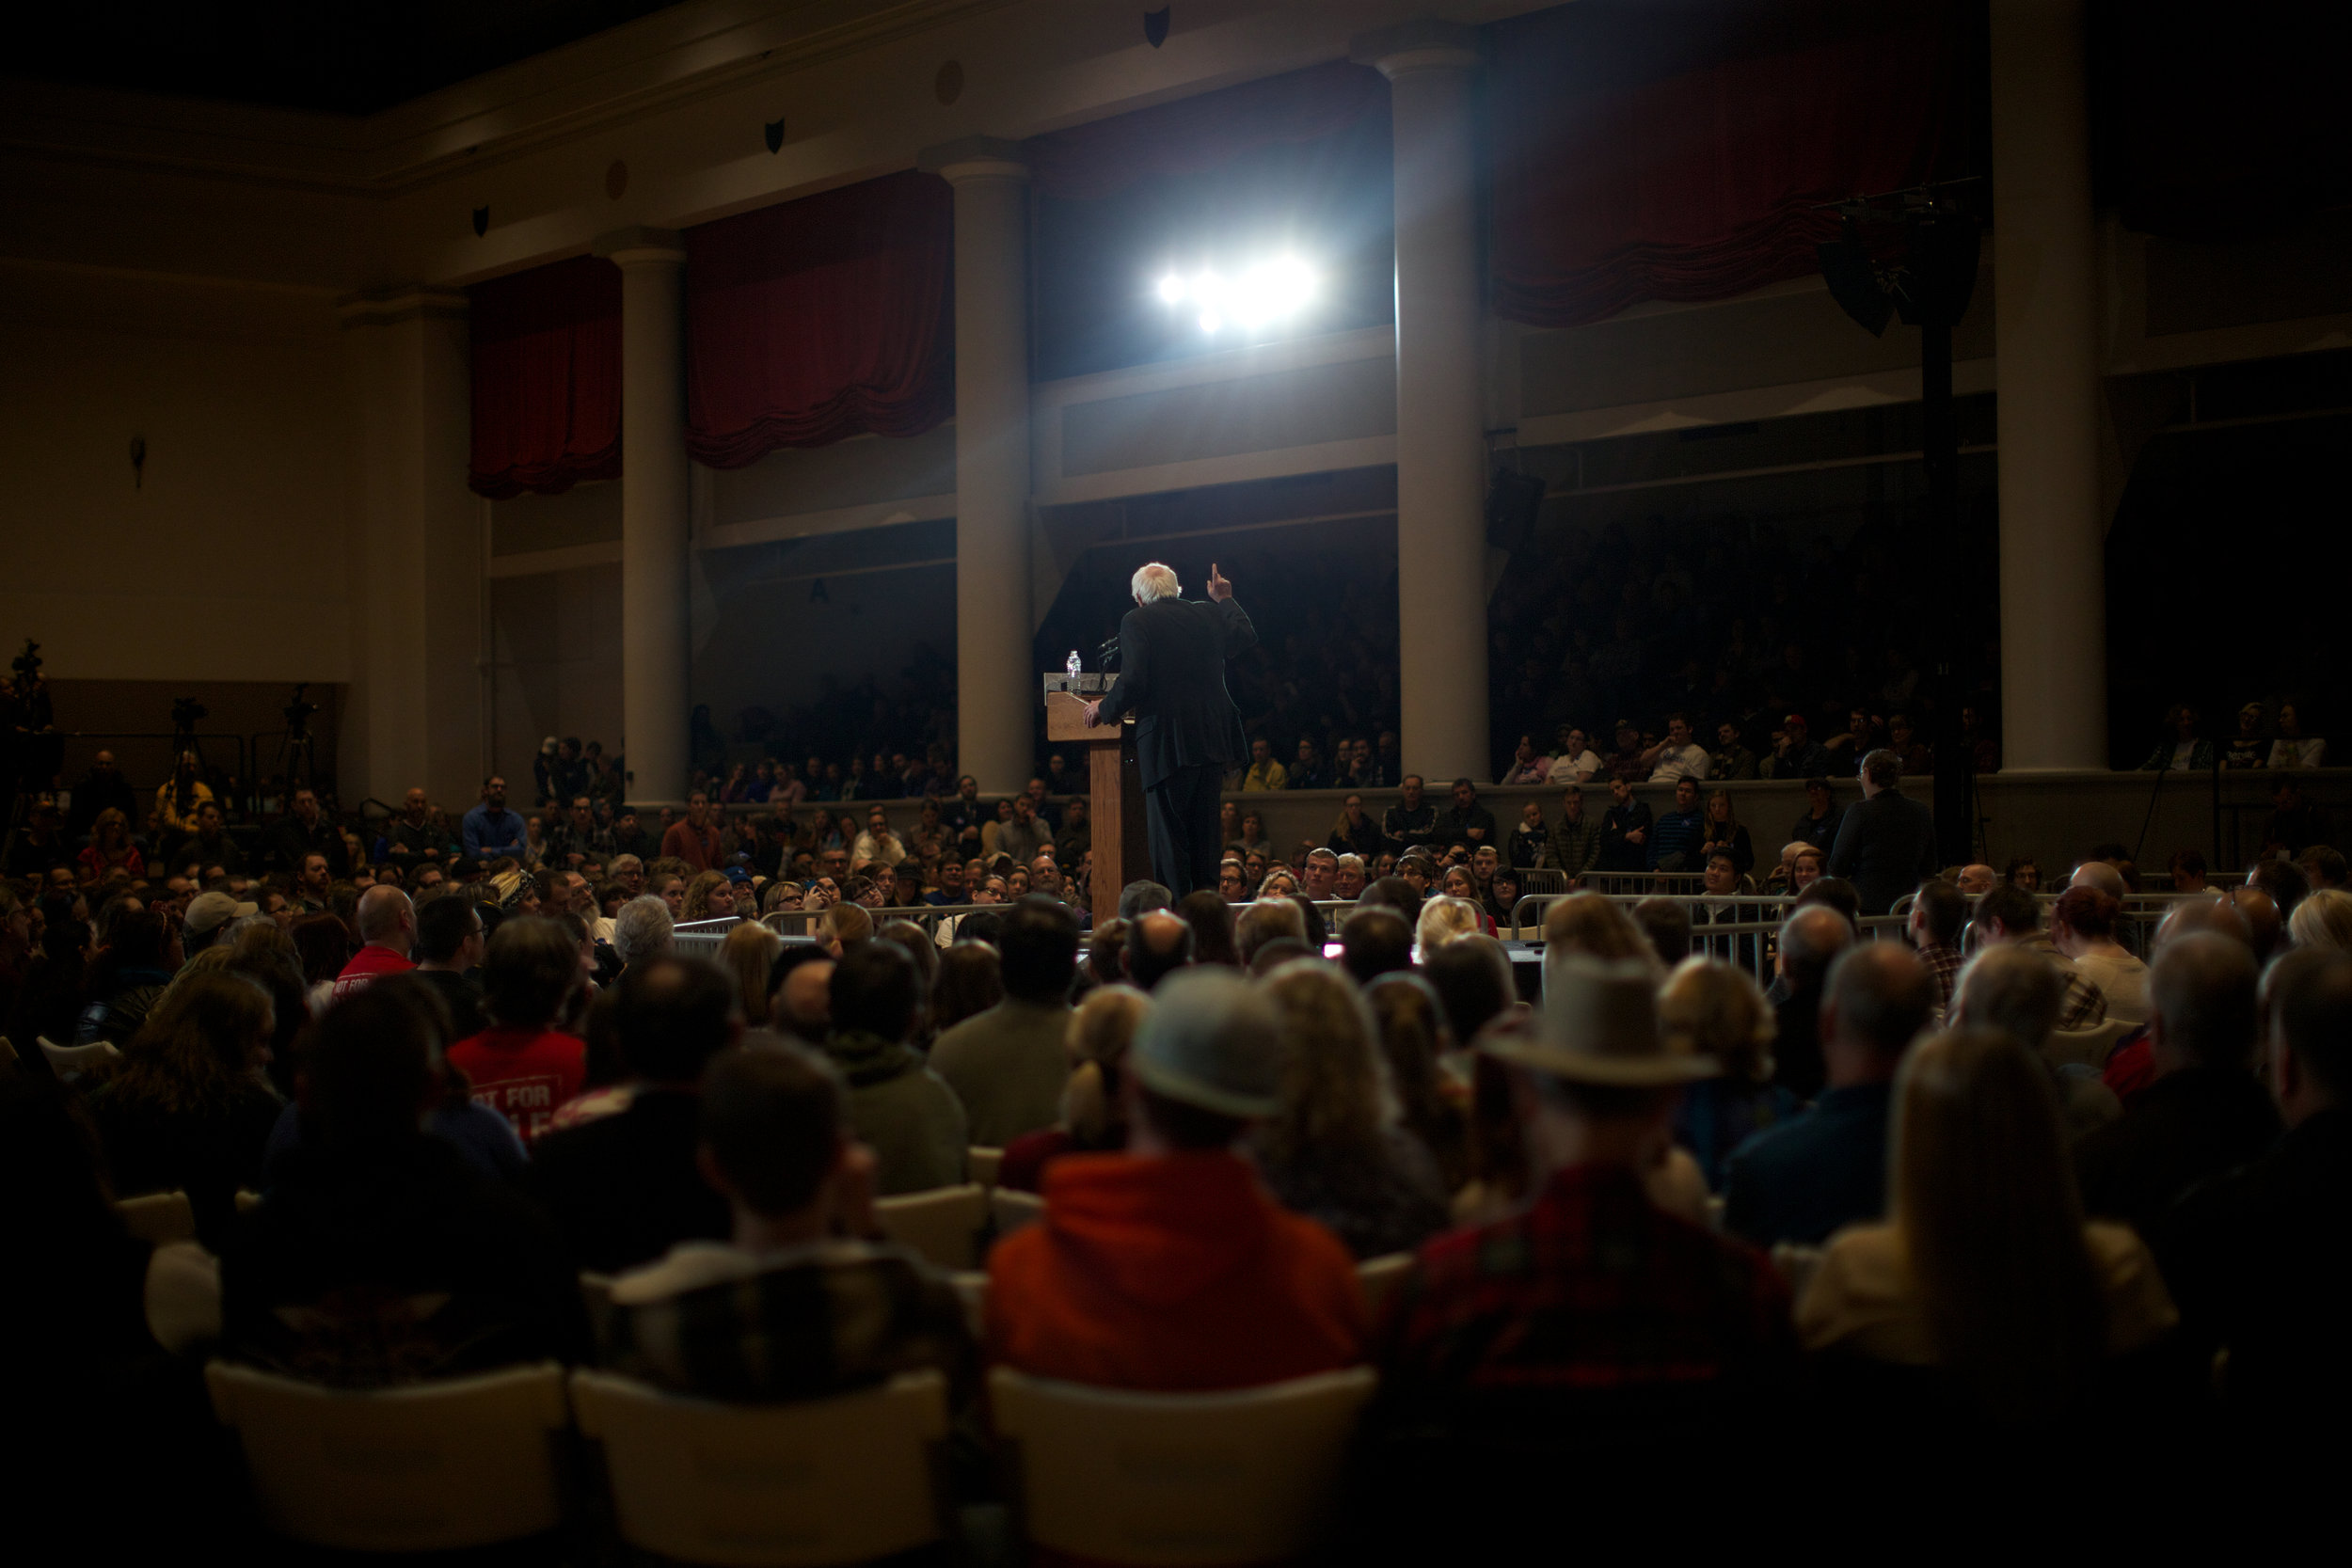 Bernie Sanders speaks to a crowded room inside the Veterans Memorial Building on Friday, Jan. 08, 2016 in Cedar Rapids. Sanders, a Democratic presidential candidate. discussed college tuition, global climate change and gun violence. (The Daily Iowan/Brooklynn Kascel)